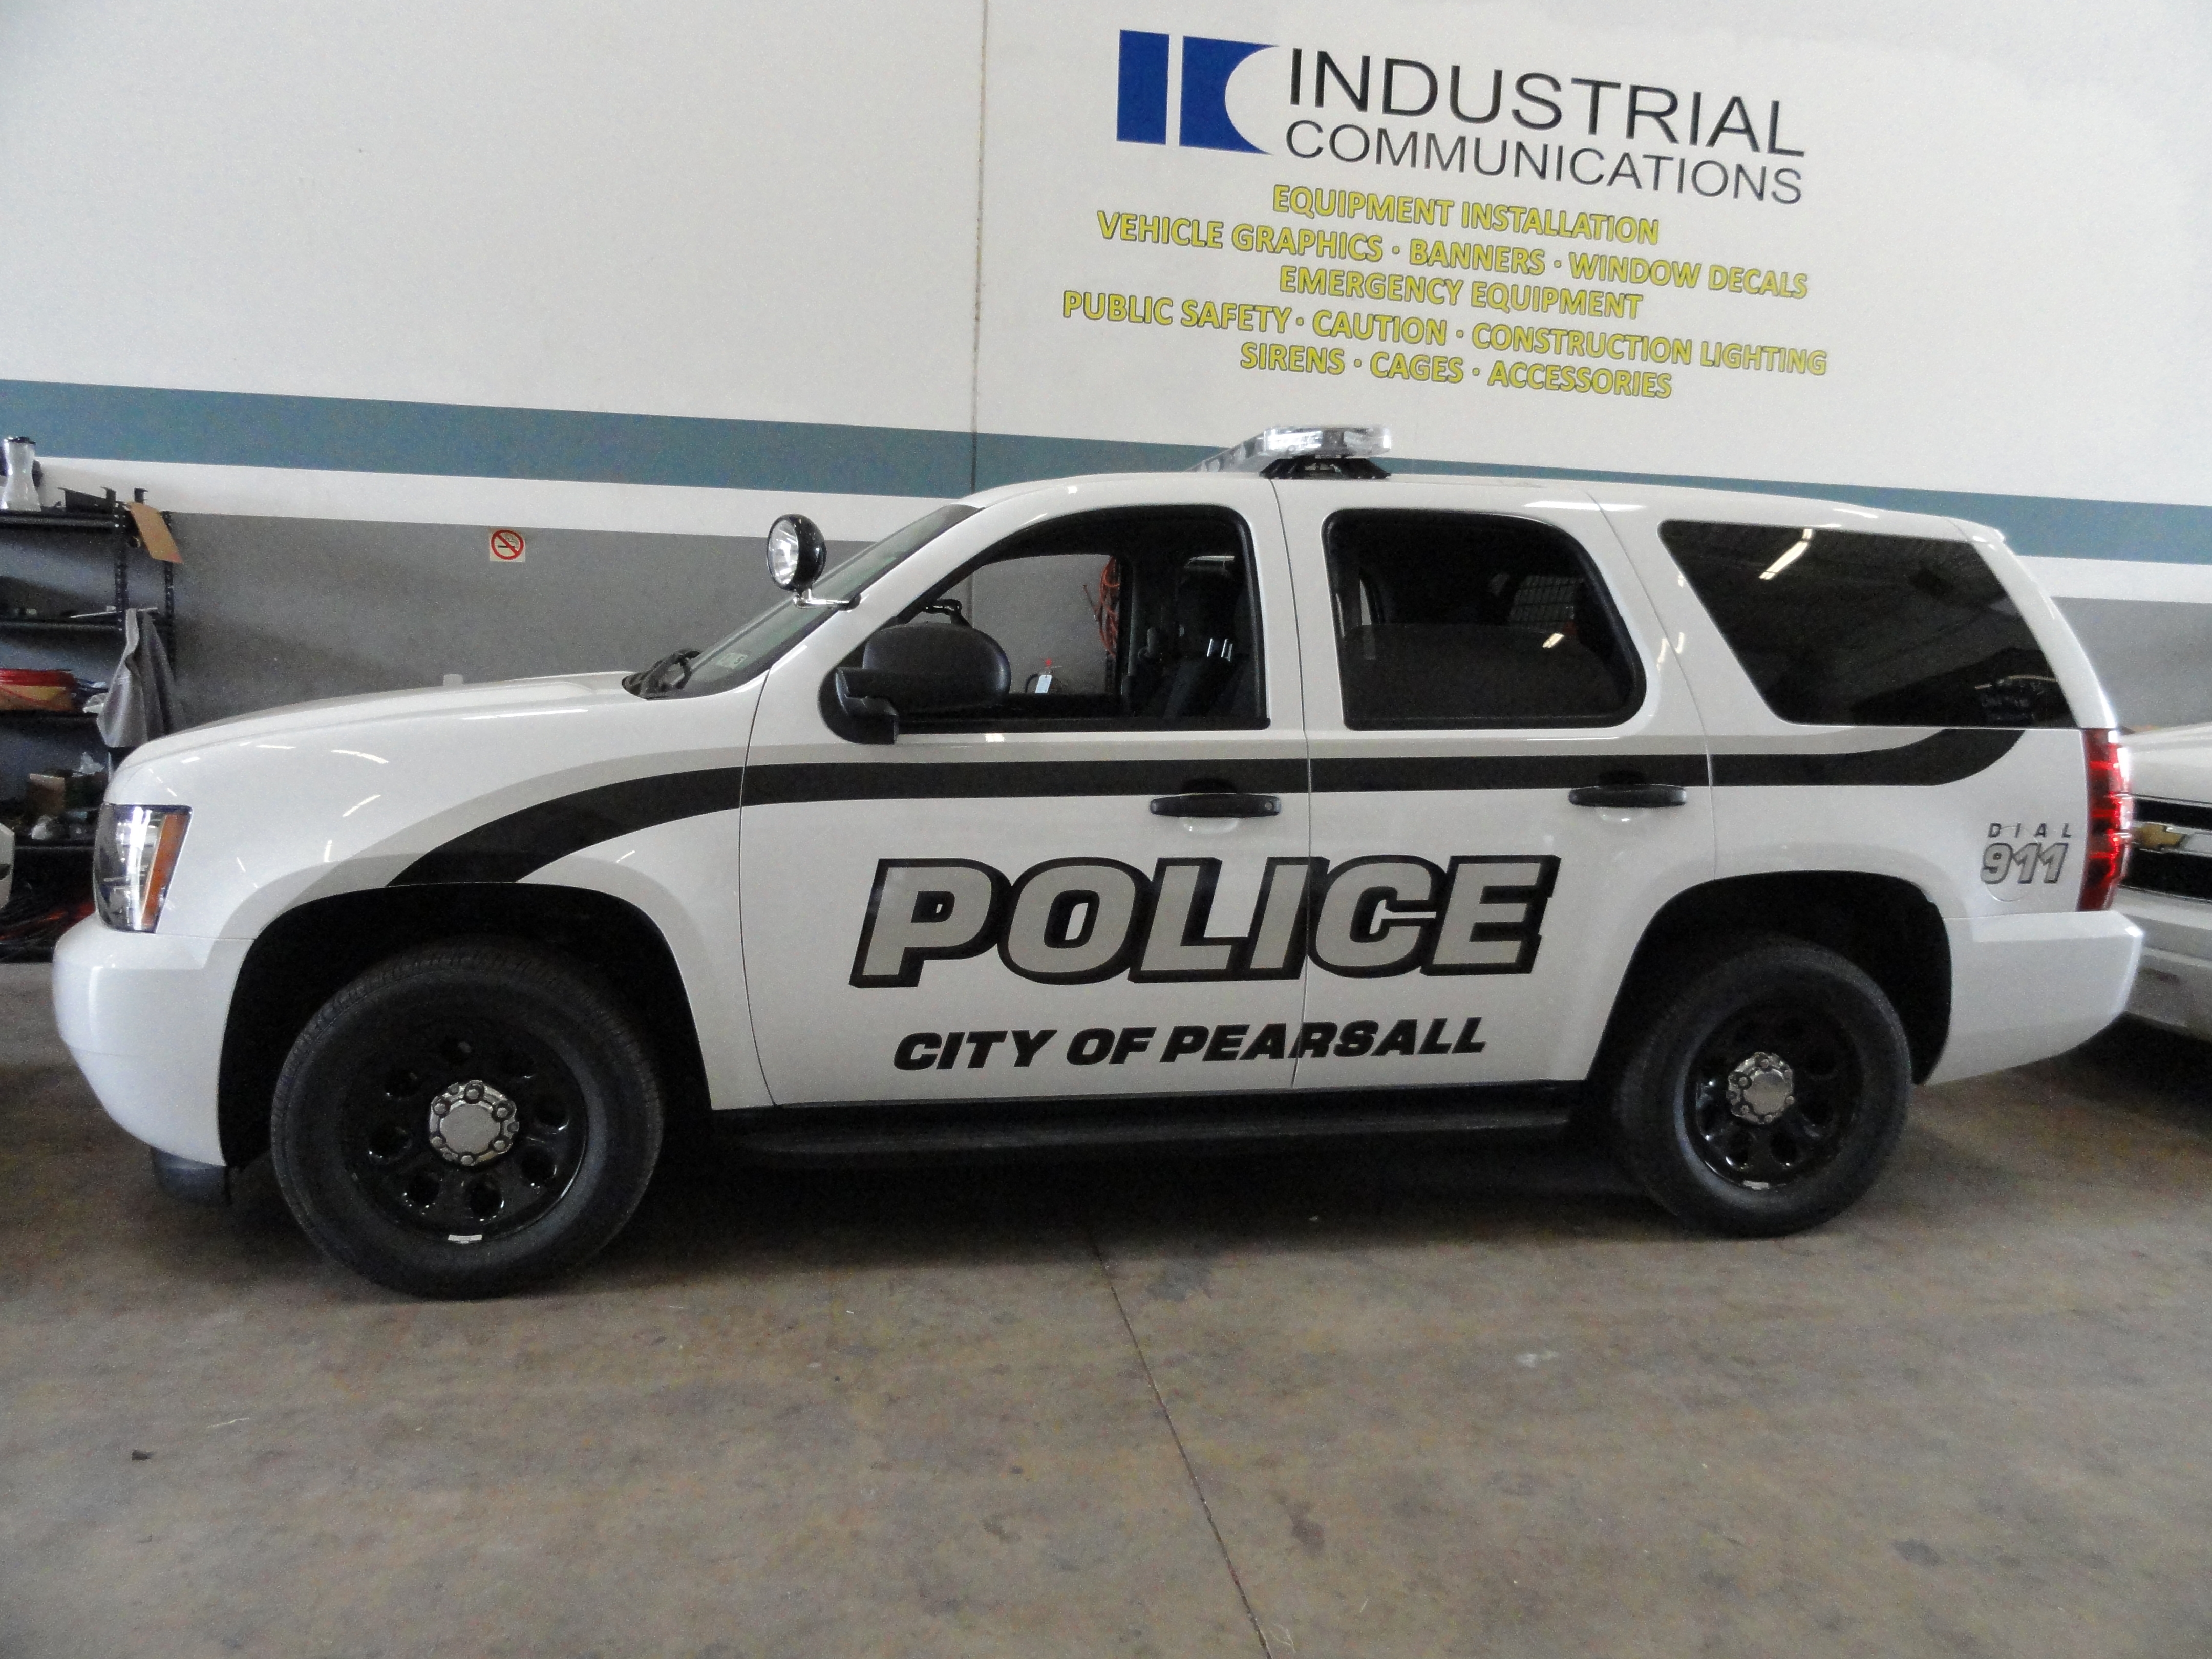 City of Pearsall Police Graphics 2